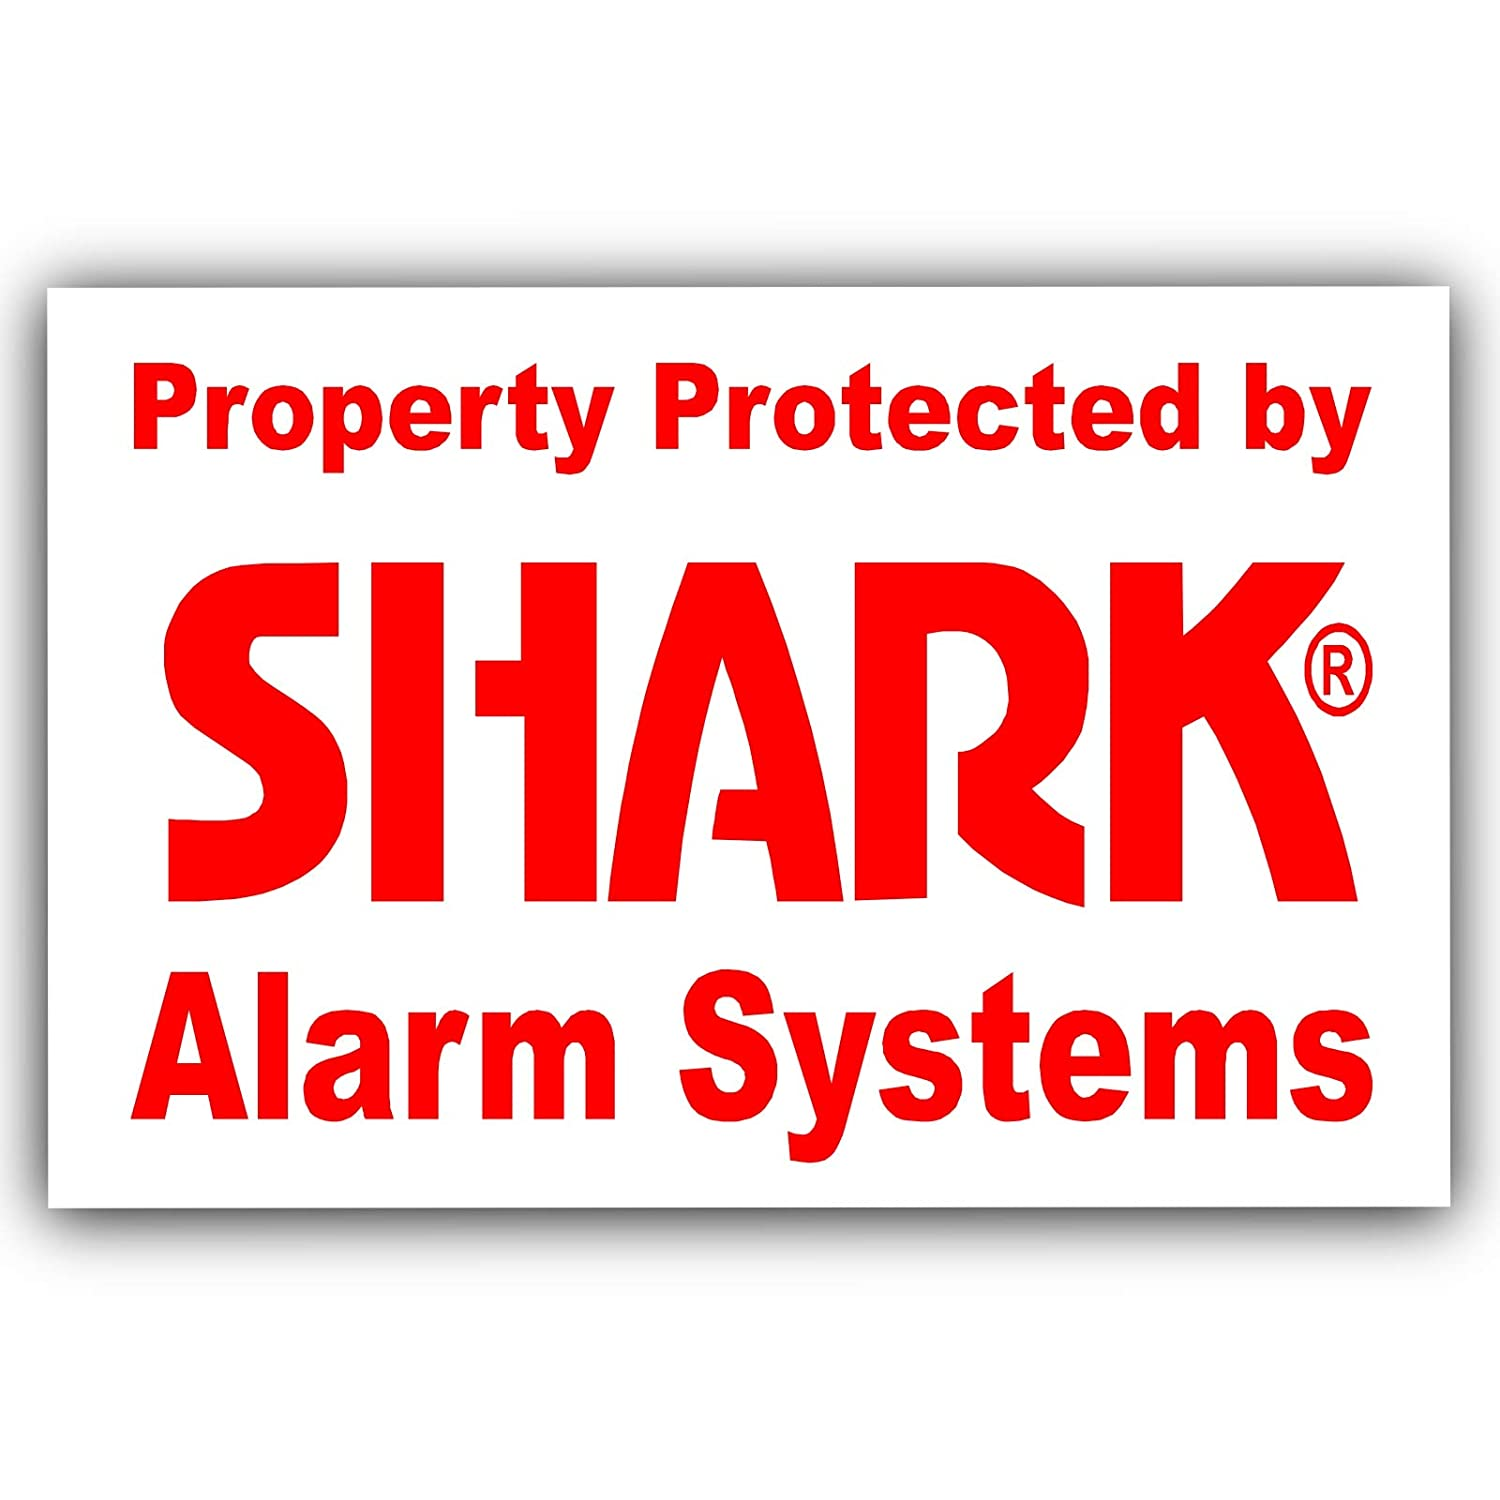 size 60mm x 45mm tiiwee Home Security Alarm Stickers Blue Outdoors Laminated 2 x UV coated Set of 6 Labels